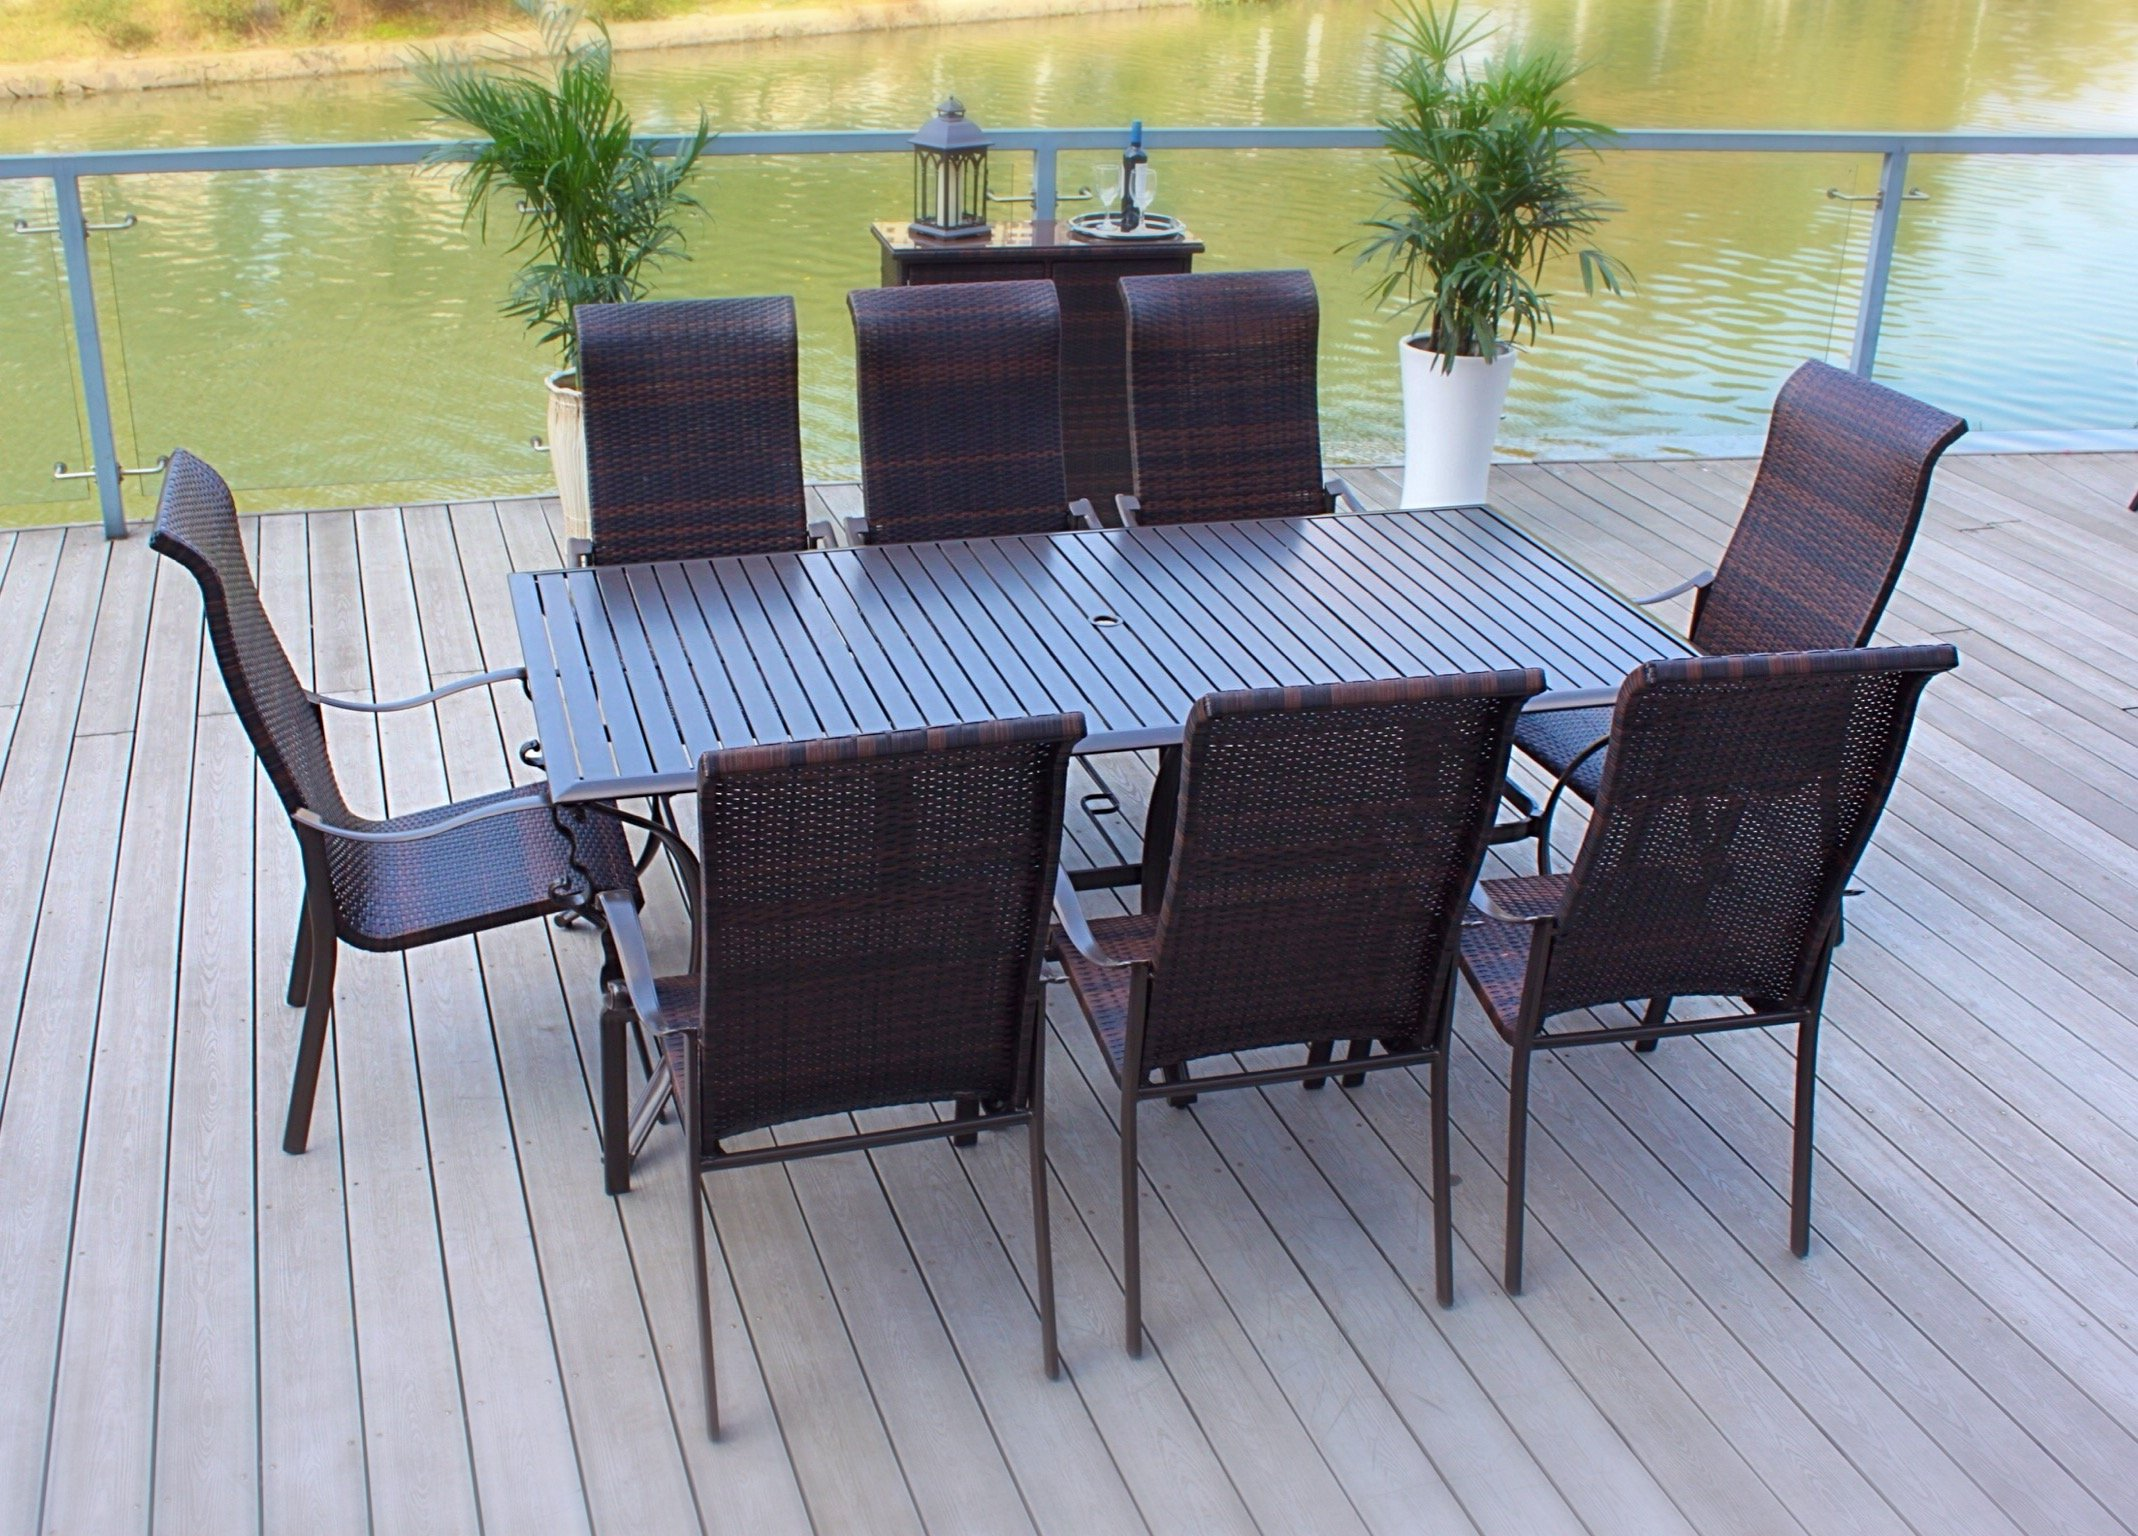 "Pebble Lane Living All Weather Rust Proof Indoor/Outdoor Premium 9 Piece Cast Aluminum Patio Dining Set, 1 Slat Top Dining Table with Umbrella Hole & 8 Wicker Dining Chairs, Brown - 6 Hand Woven All Weather Swilvel Rocking Wicker Patio Dining Chairs: 41"" H x 30"" D x 27"" W 1 Rectangle Patio Dining Table with Umbrella Hole: 82"" L x 42"" W x 28"" H Outdoor Wicker is All Weather UV and Mold Resistant - patio-furniture, dining-sets-patio-funiture, patio - 911moiDxeYL -"